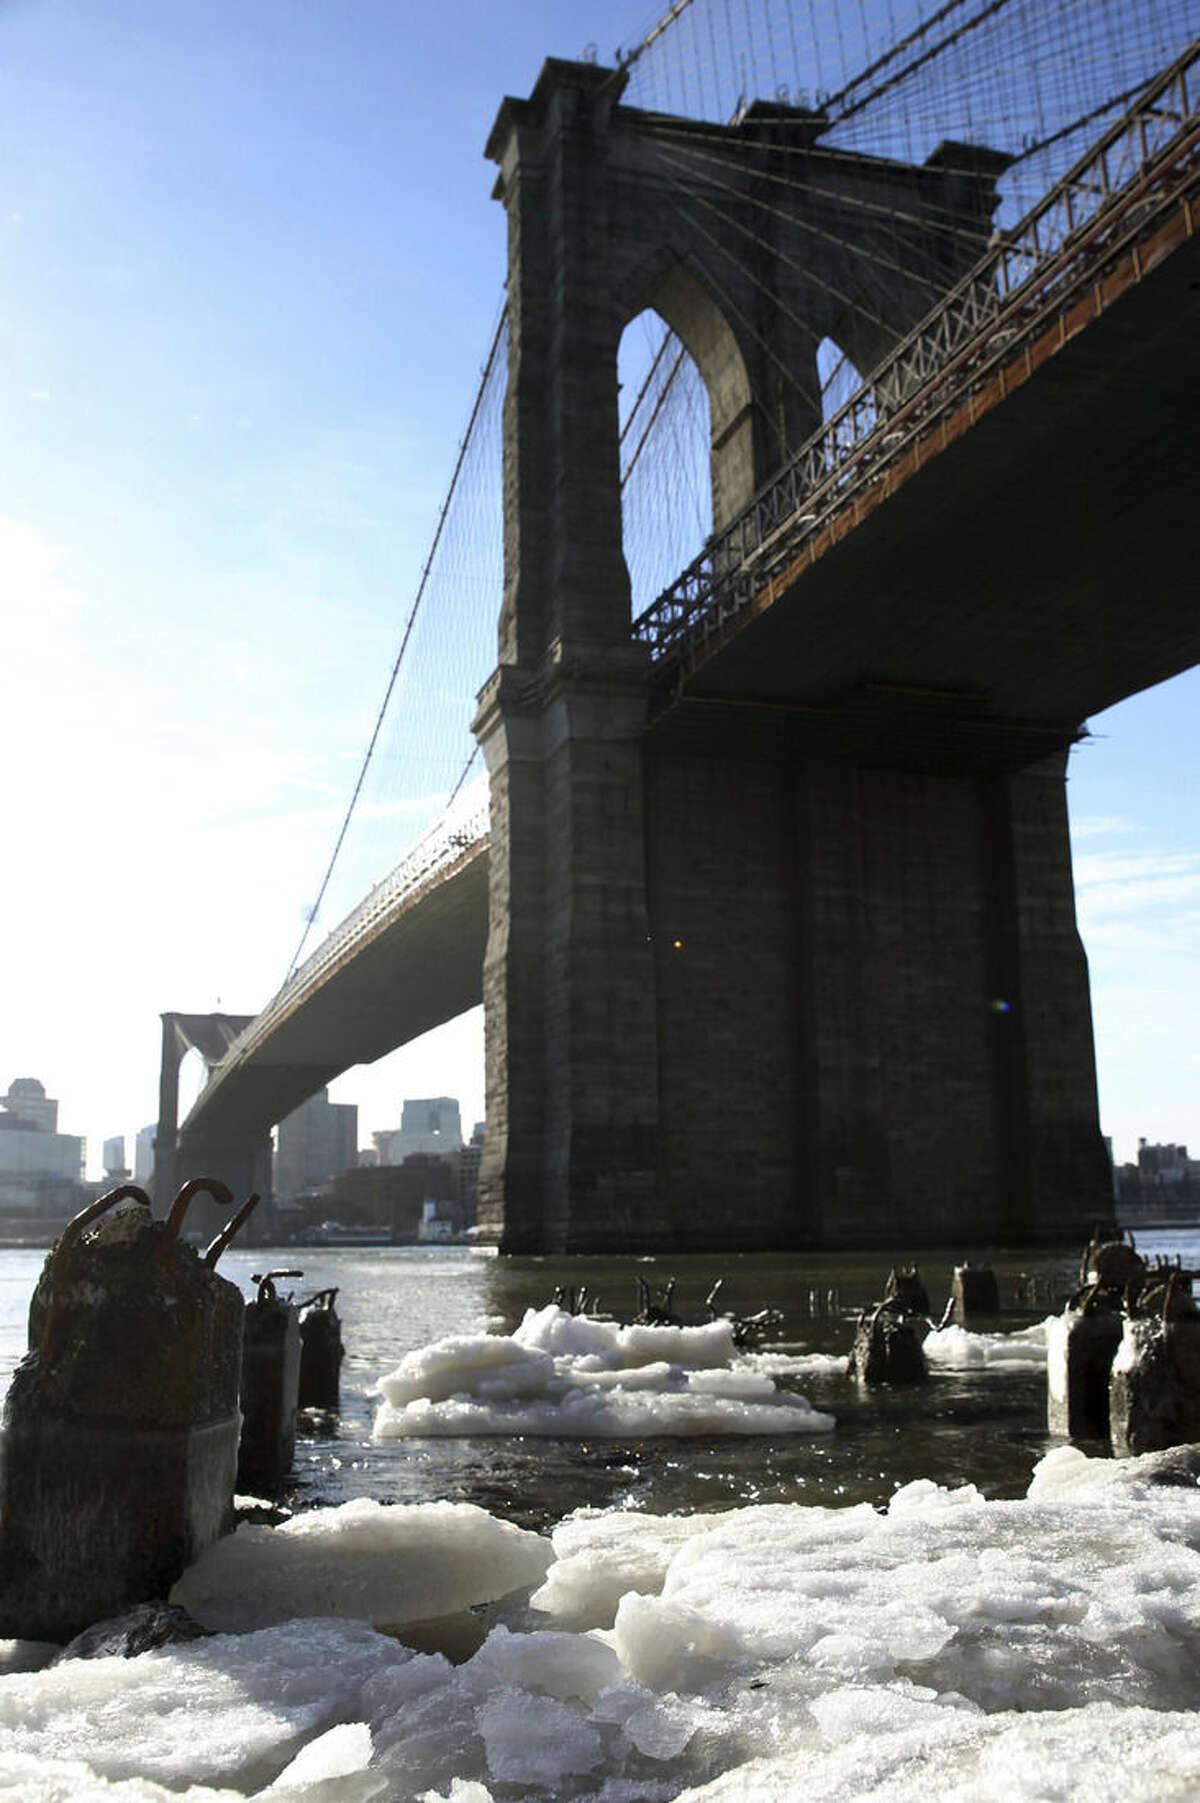 Ice forms under the Brooklyn Bridge on the Manhattan side of the East River in New York on Monday, Feb. 16, 2015. Temperatures in the city were in the single digits on Monday morning. (AP Photo/Peter Morgan)